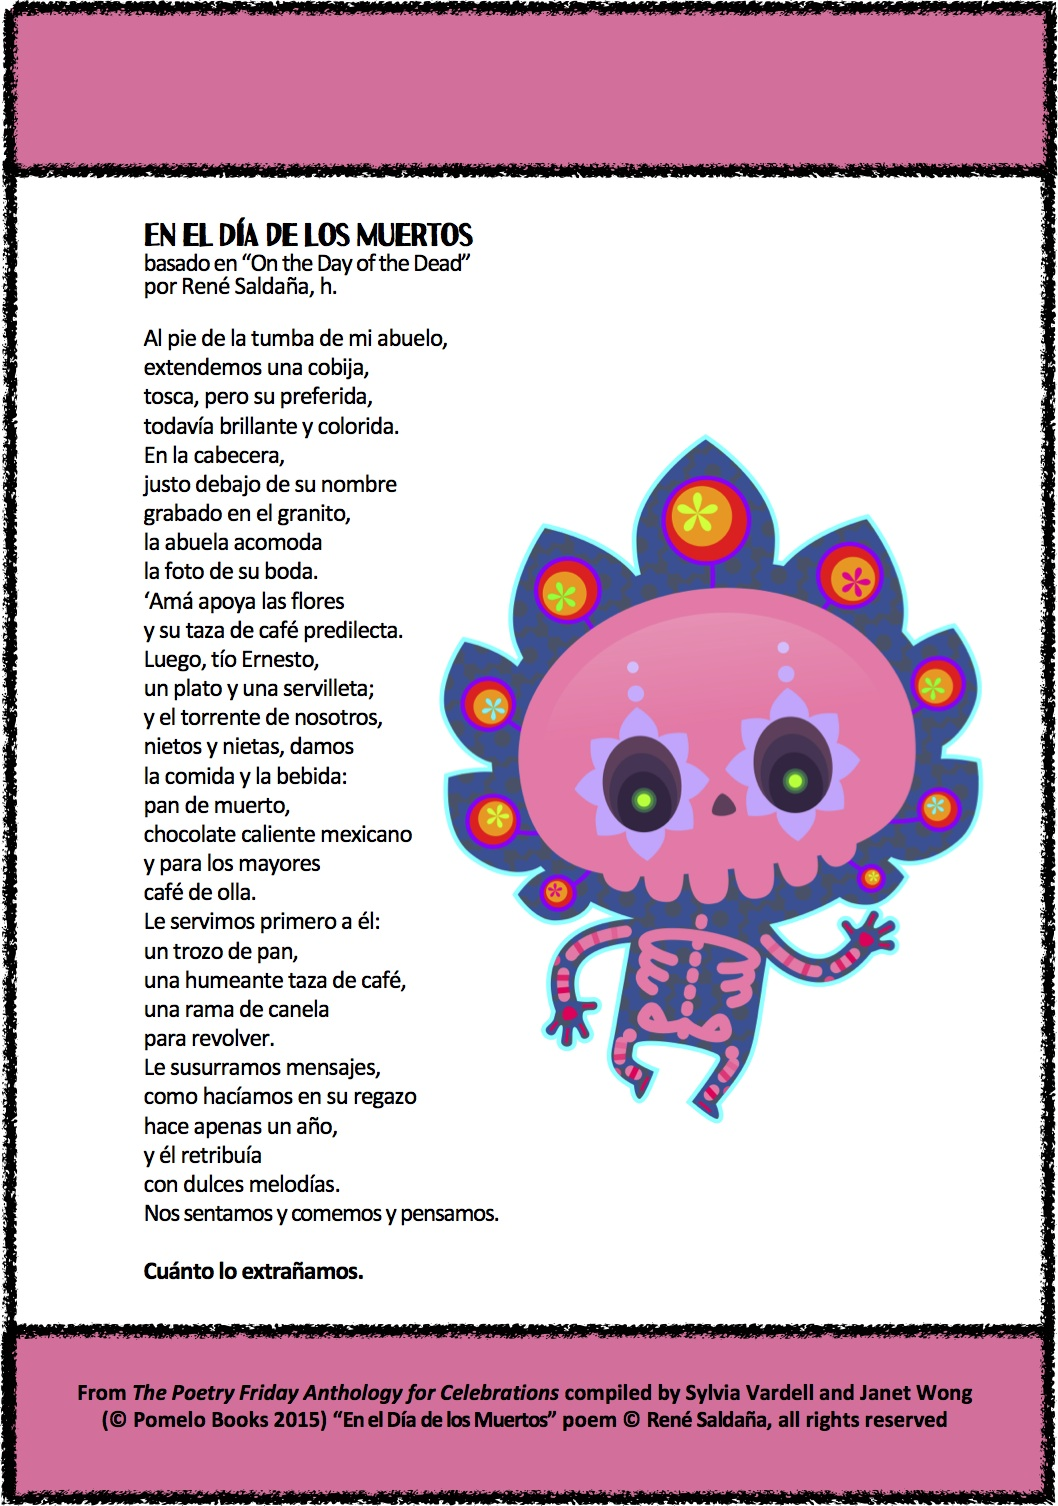 day of the dead essay in spanish The day of the dead is a very special day for the spanish speaking world this day is more popular for mexican people, it is more traditional in their heritage it occurs on the first of november.